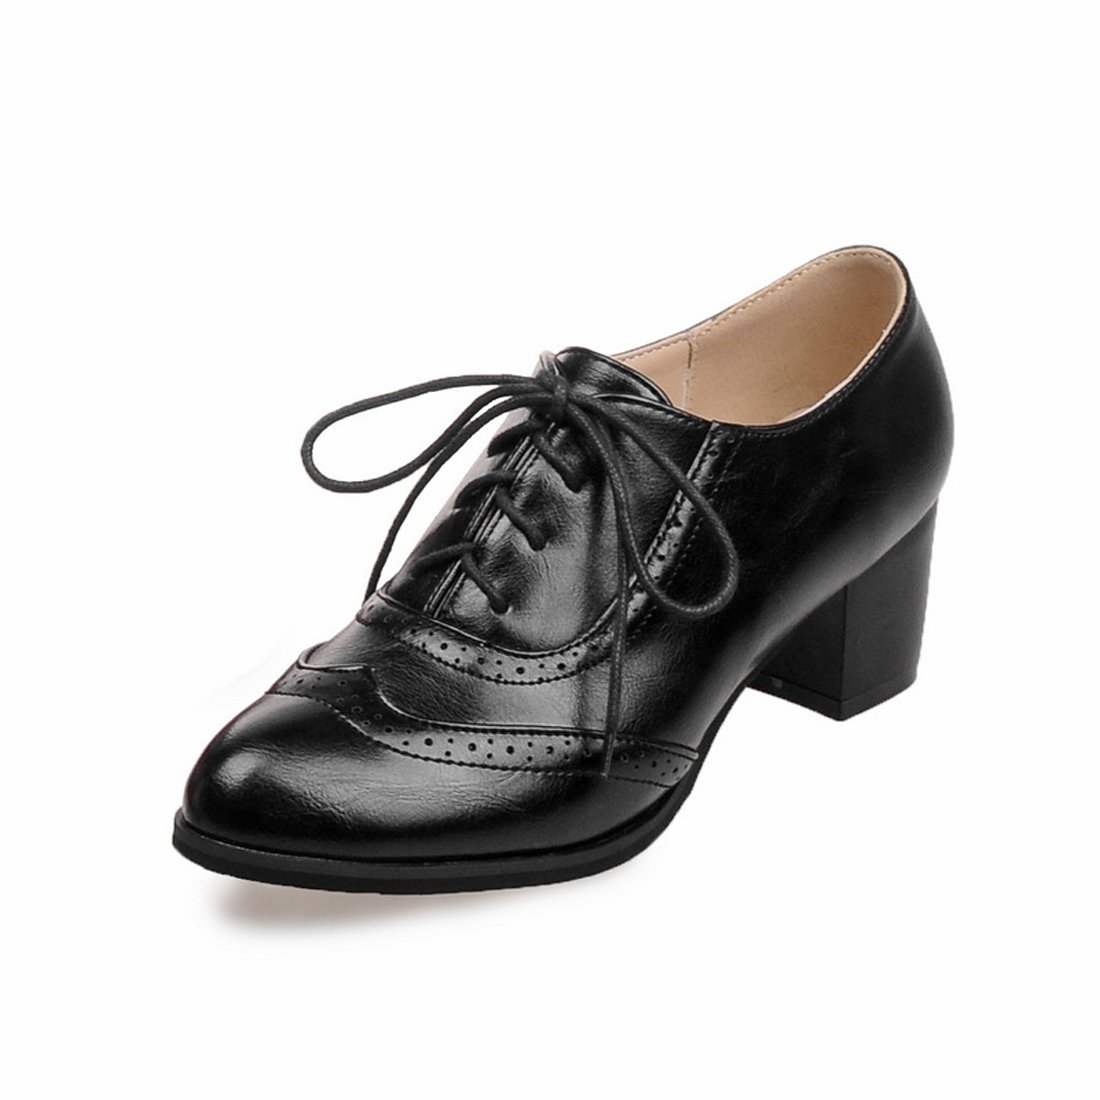 Ladies dress shoes brisbane